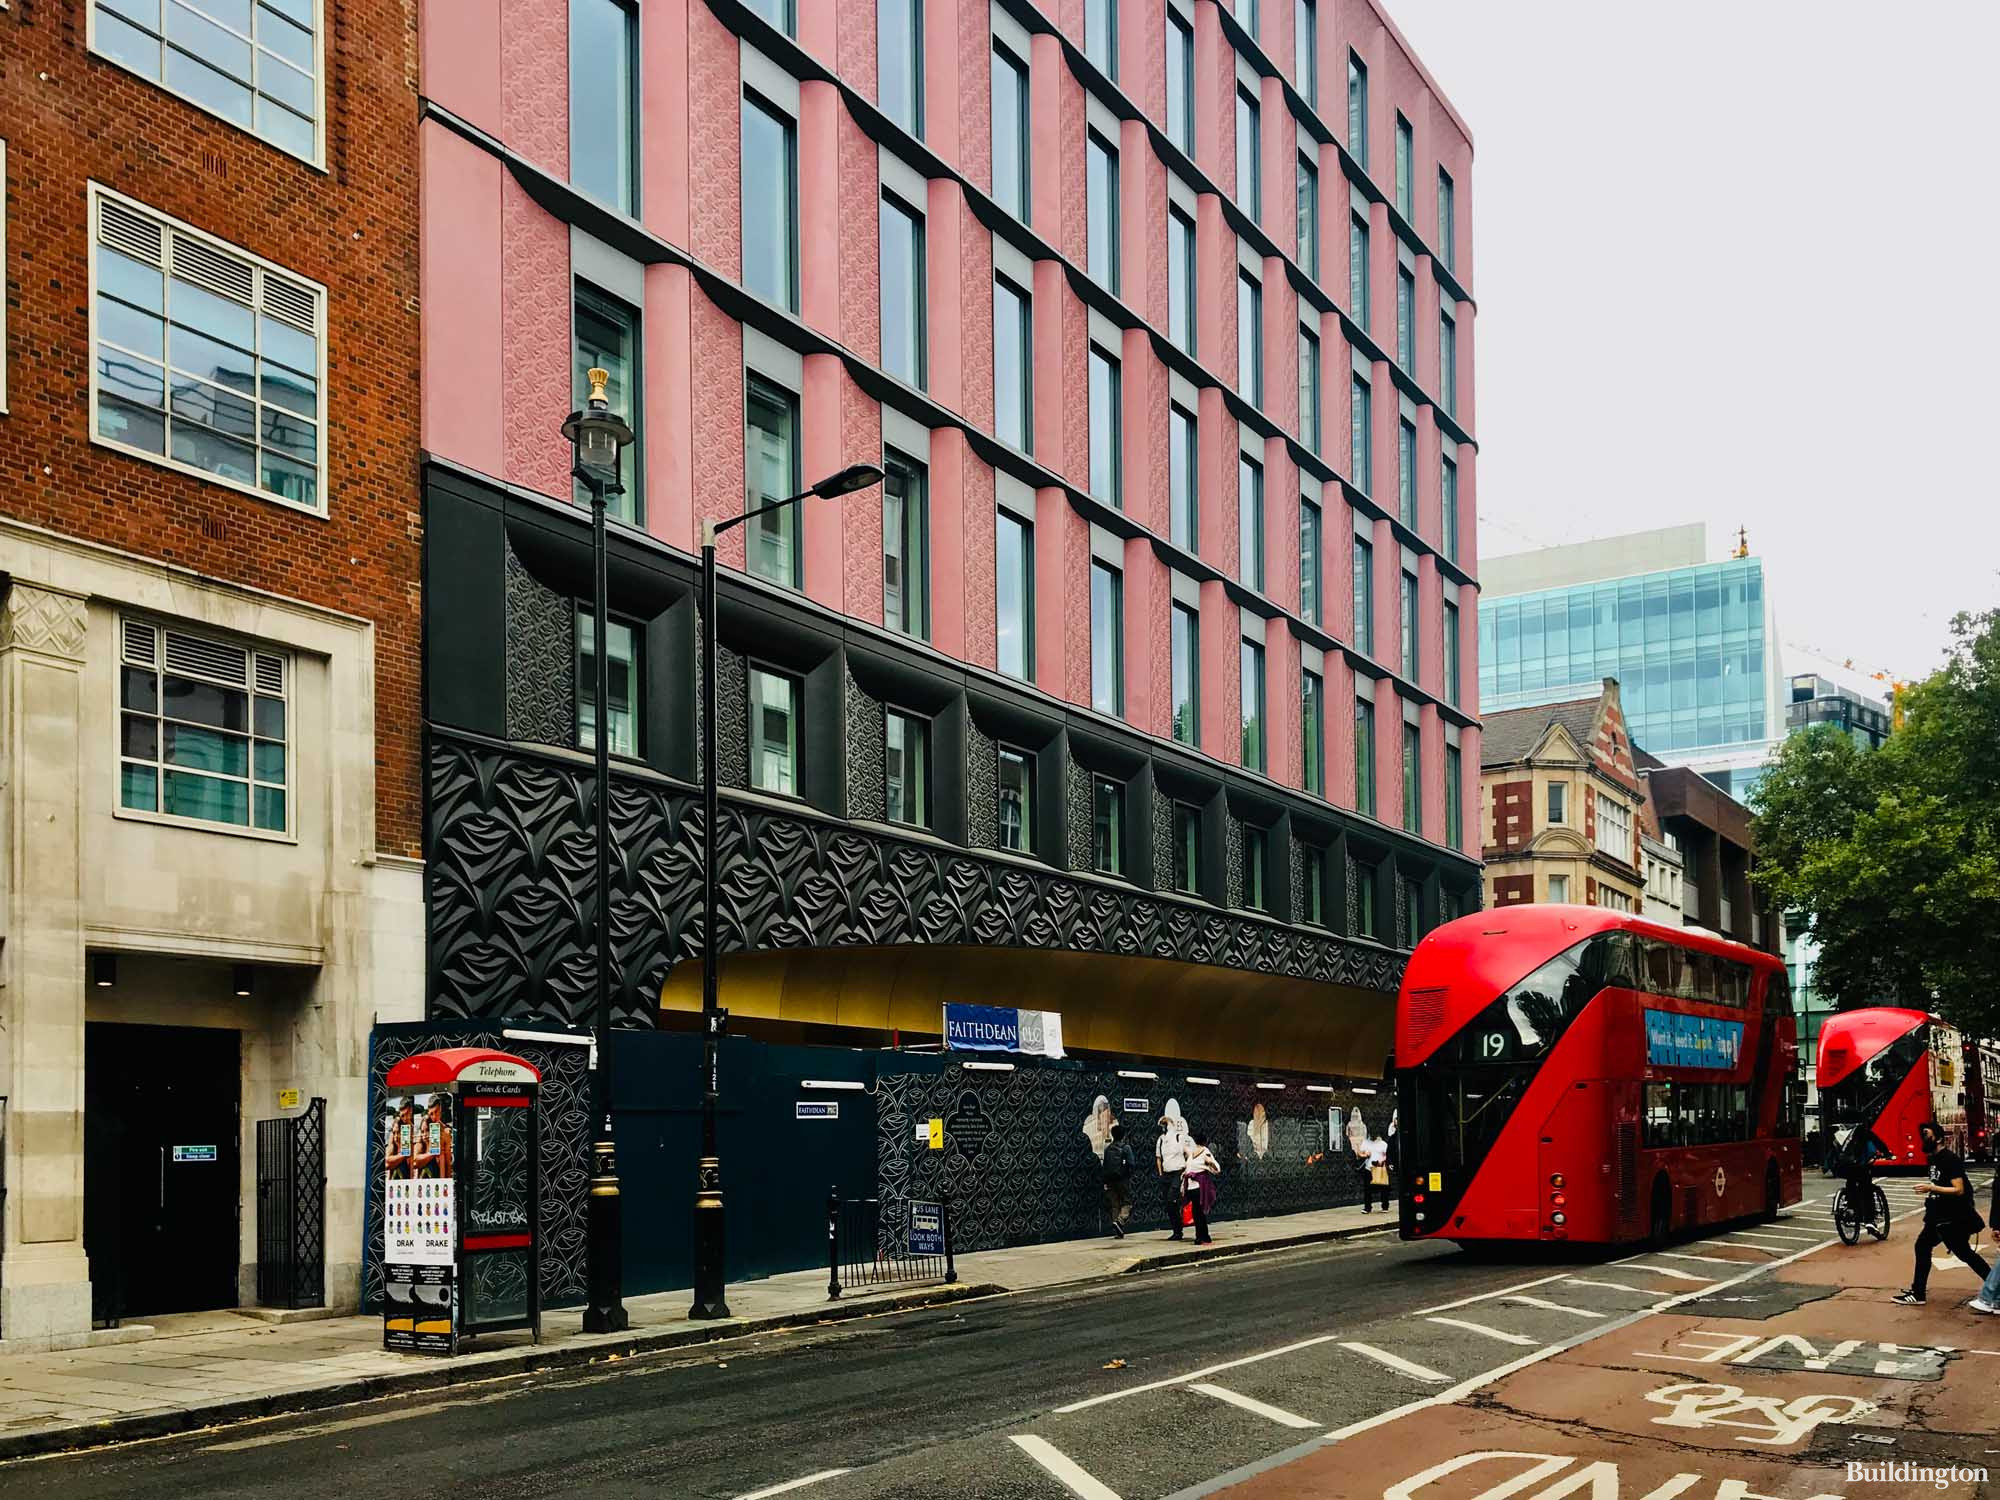 Phase 3 works at Ilona Rose House are managed by Development Managers Limited DML. View to the development from Charing Cross Road.